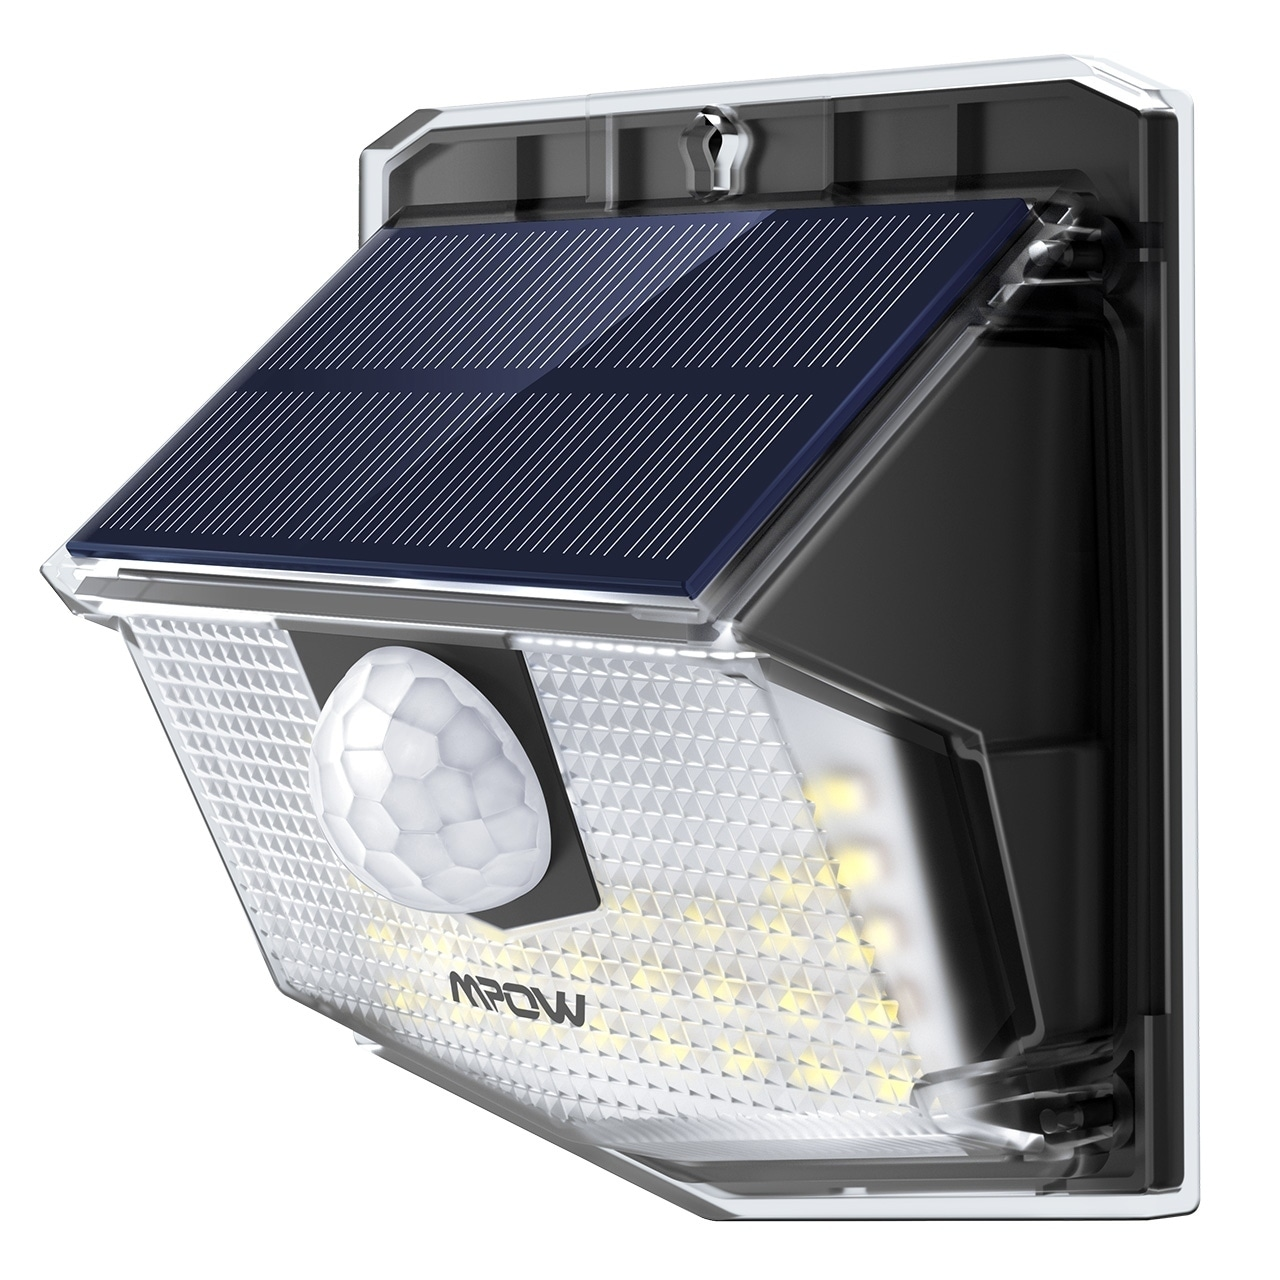 Mpow 30 Led Solar Lights Outdoor Motion Sensor With 19 5 High Efficient Panel